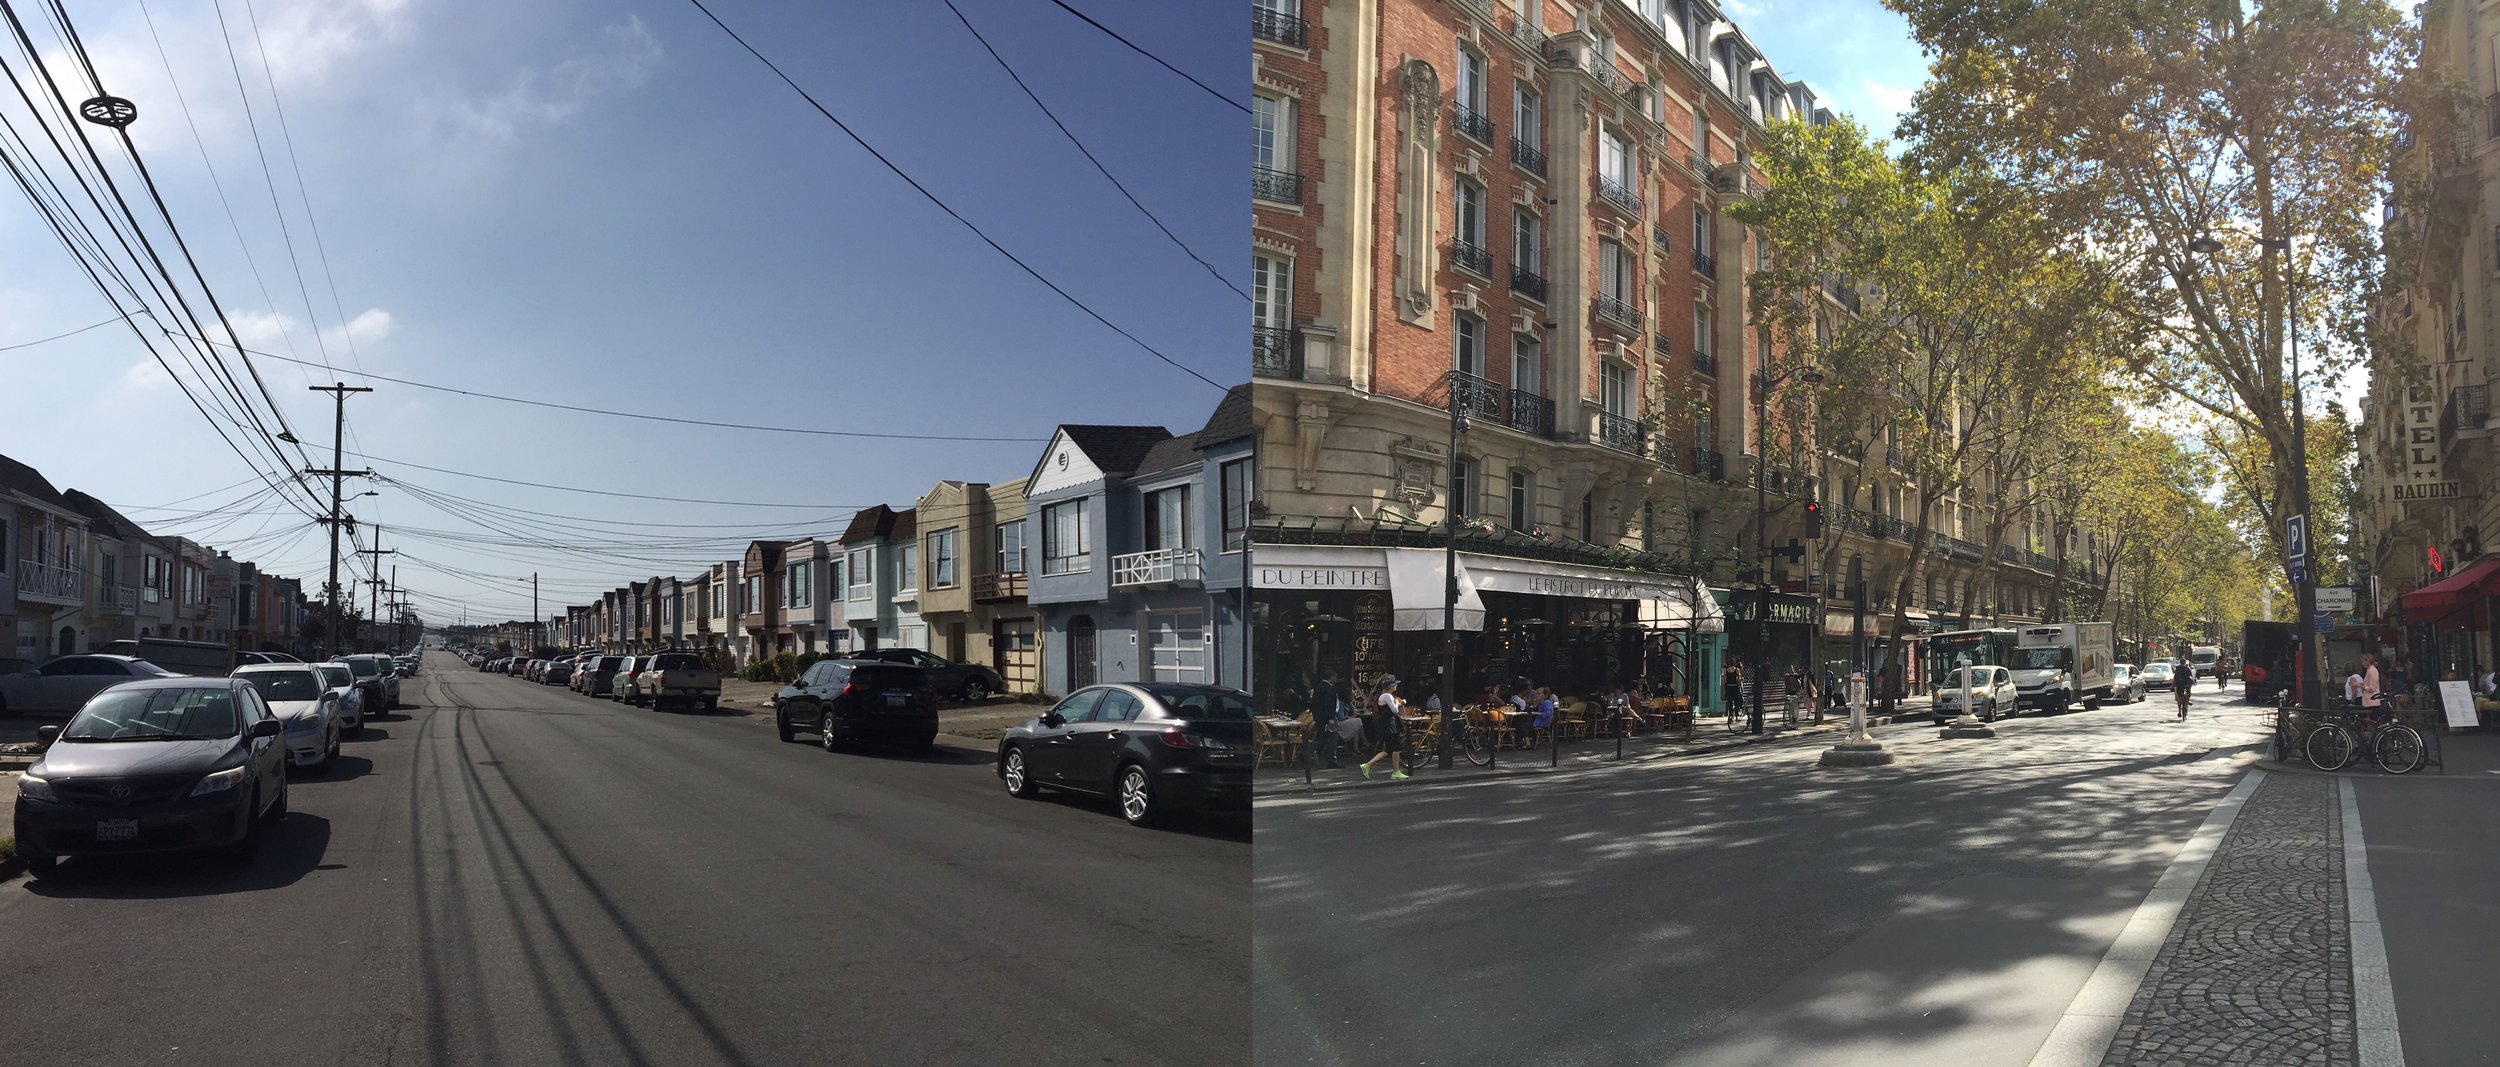 A comparison of similarly sized residential streets in San Francisco and Paris.